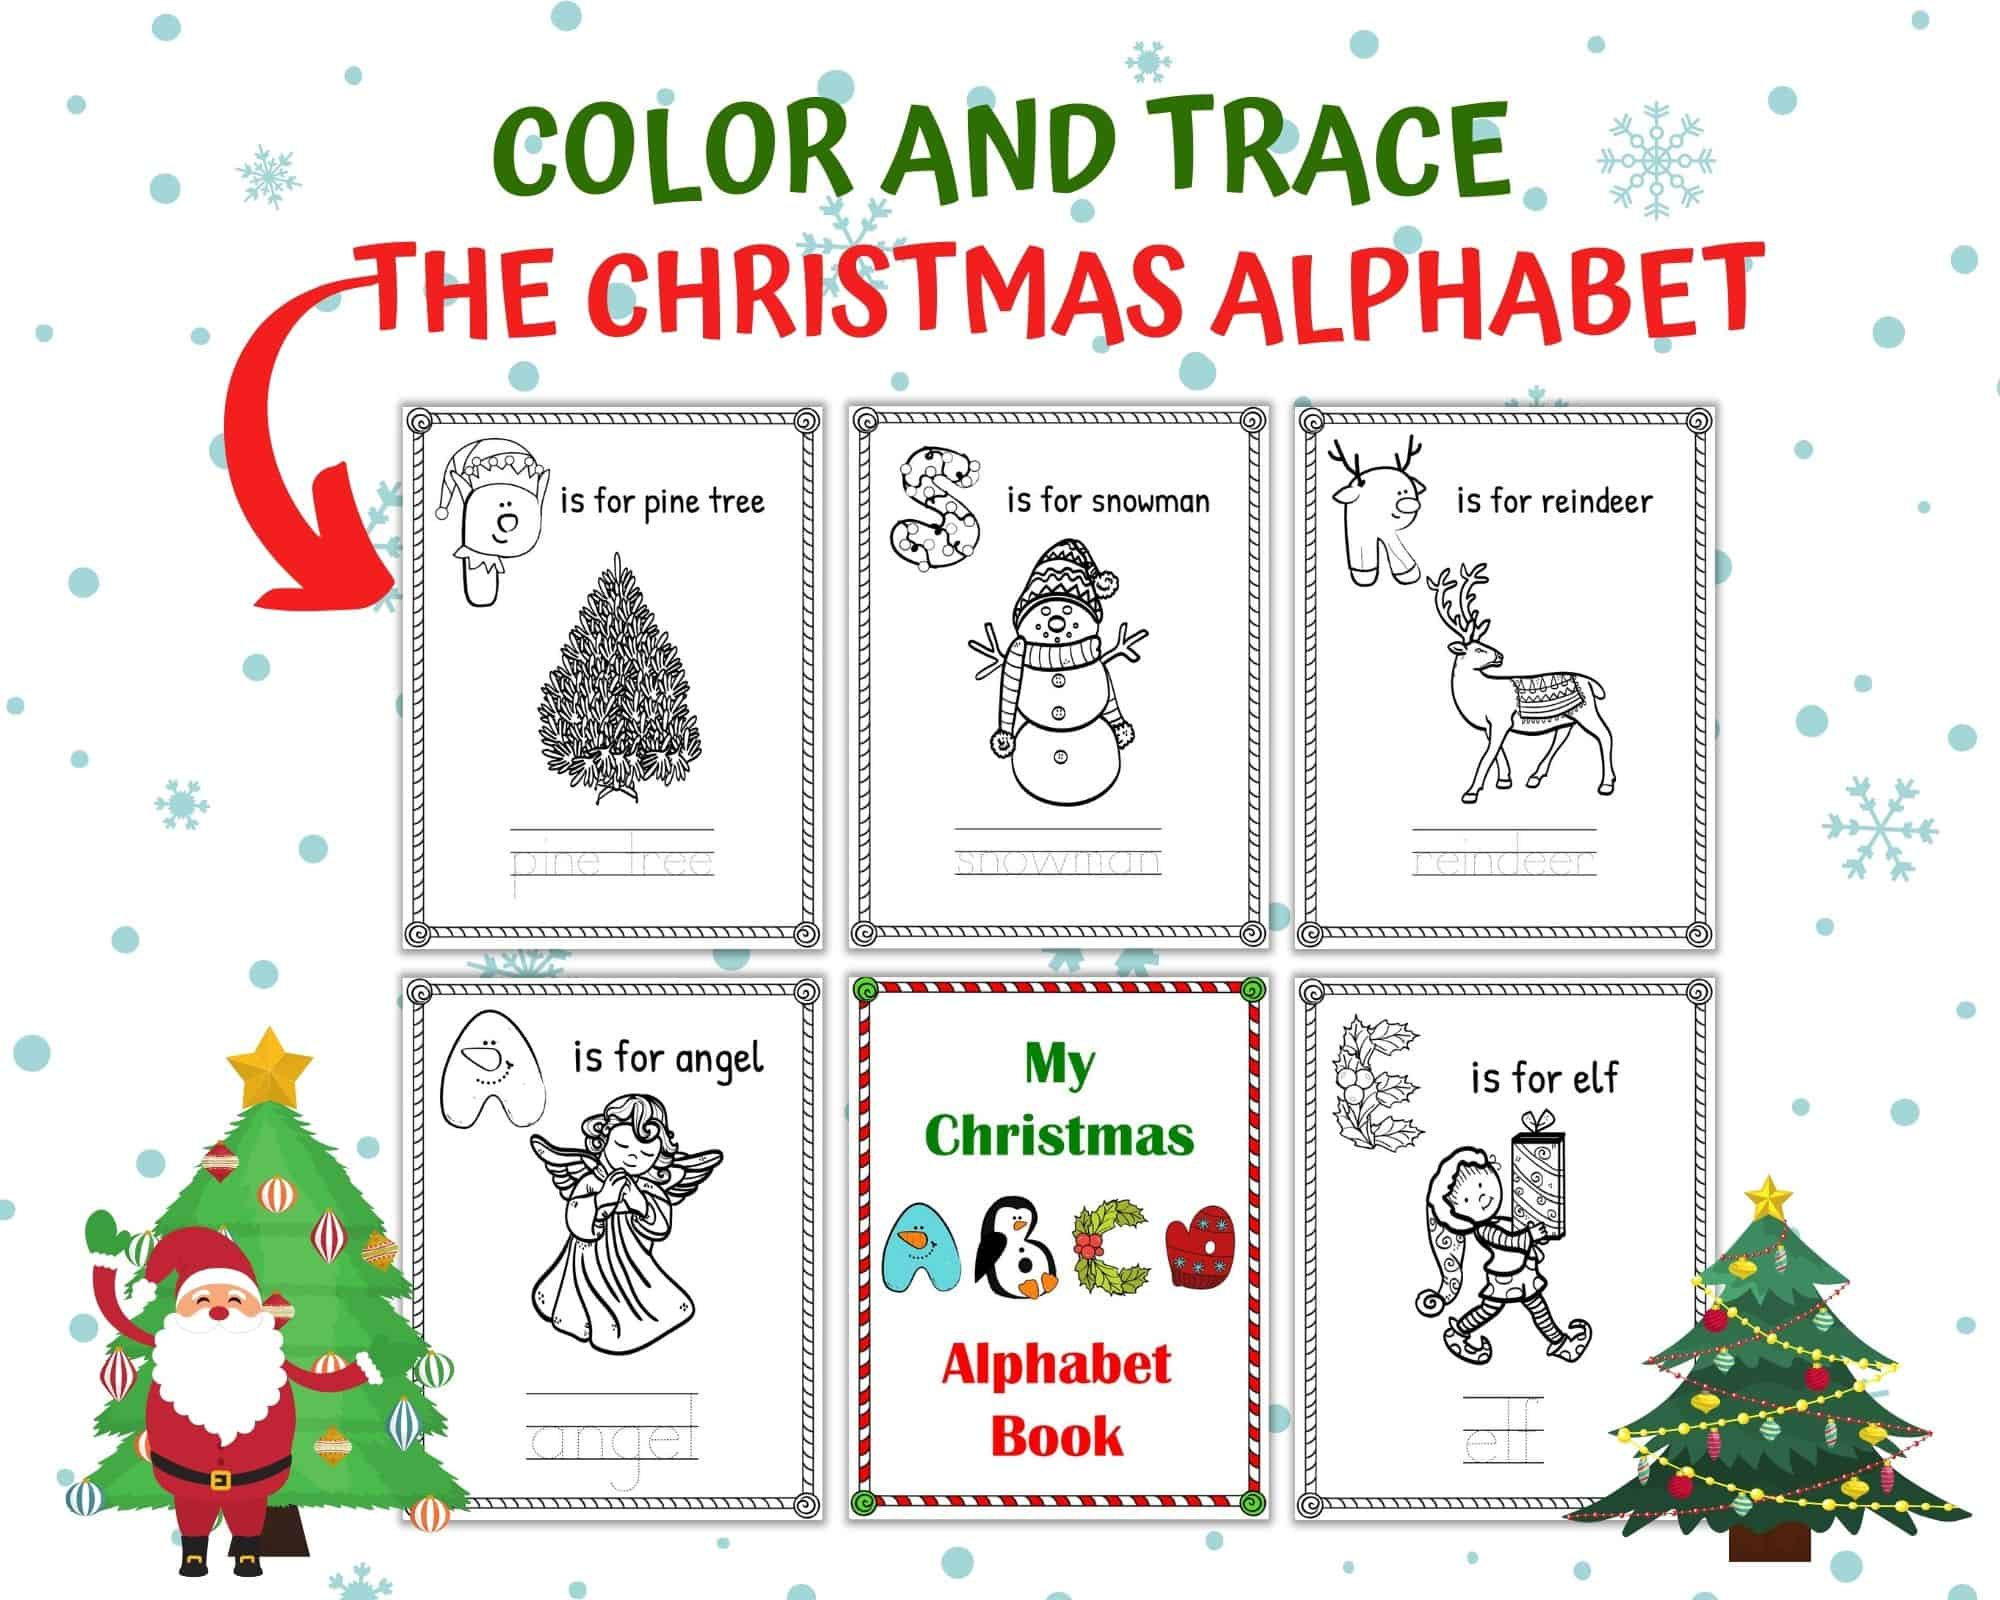 Free Christmas Alphabet Worksheets For Kindergarten One Perfectly Imperfect Mom